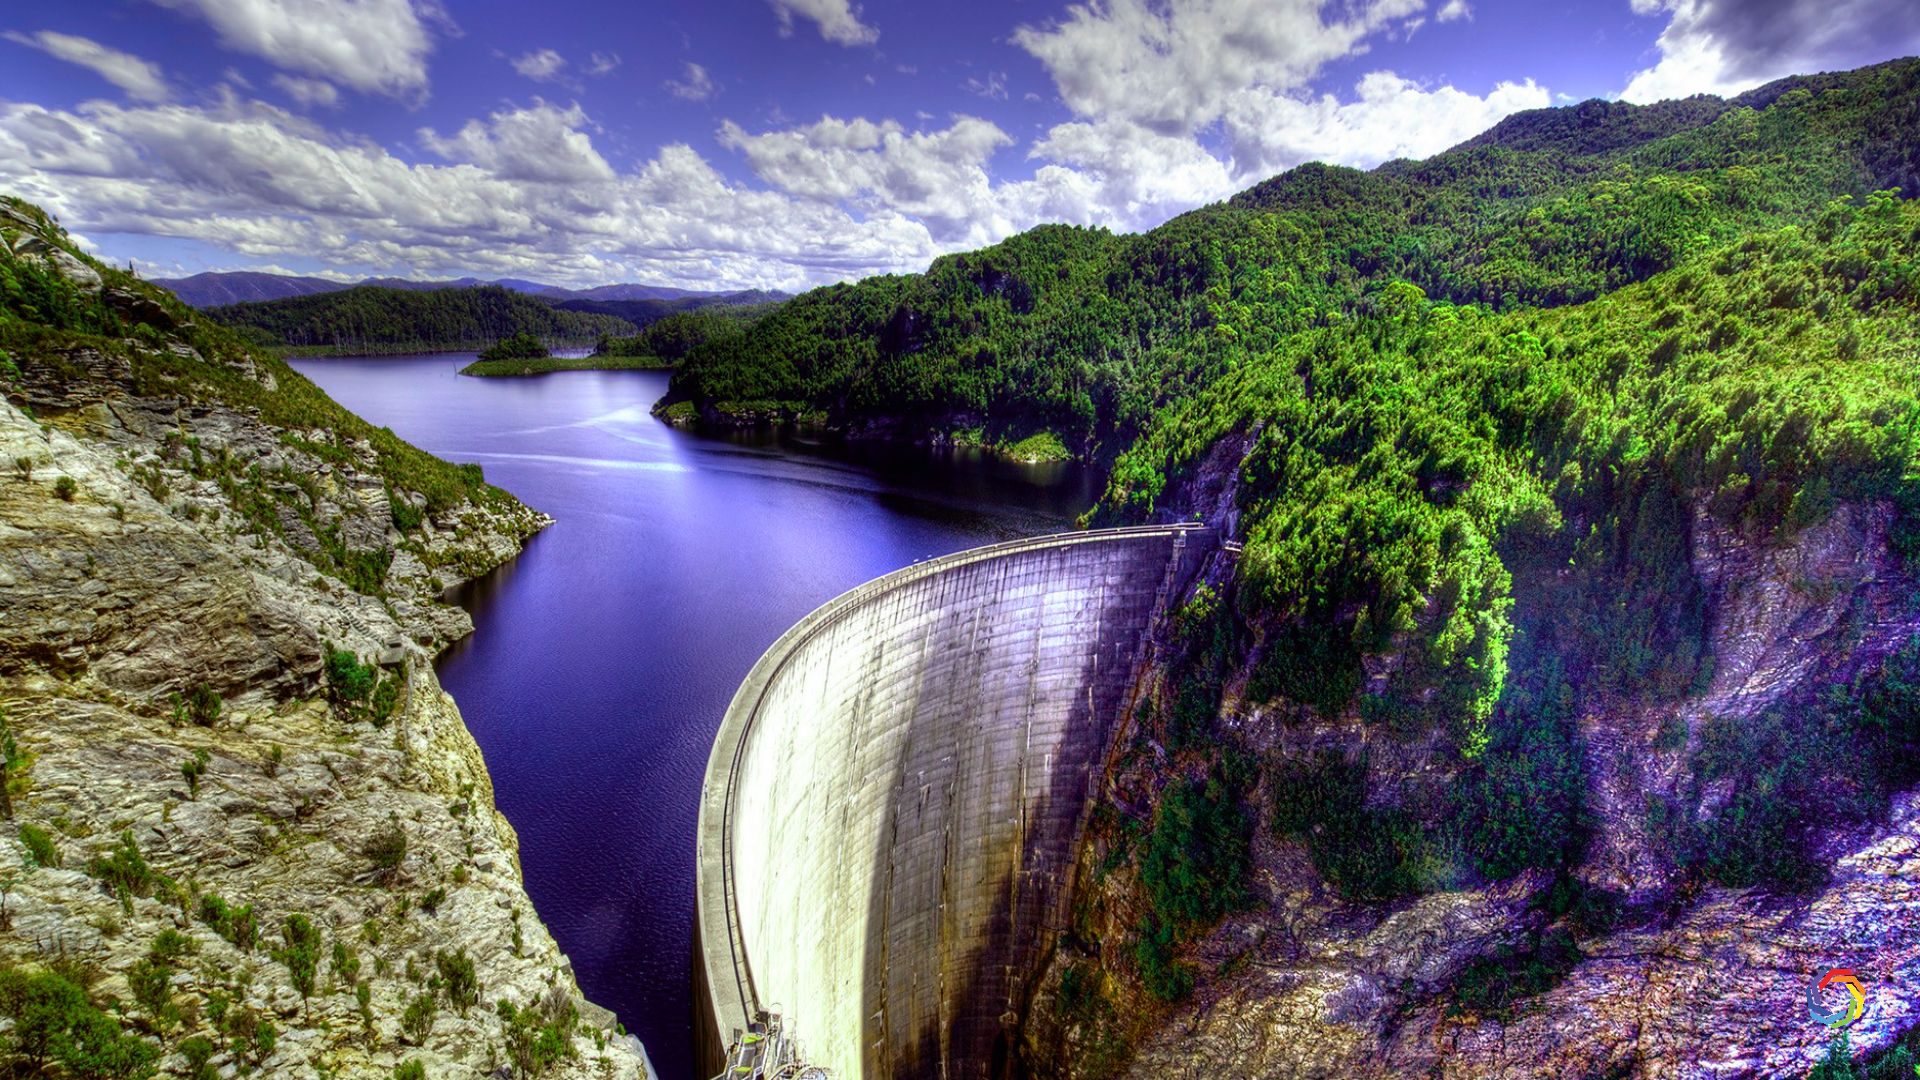 Nature Dam View Amazing 4K Download (With images) Nature